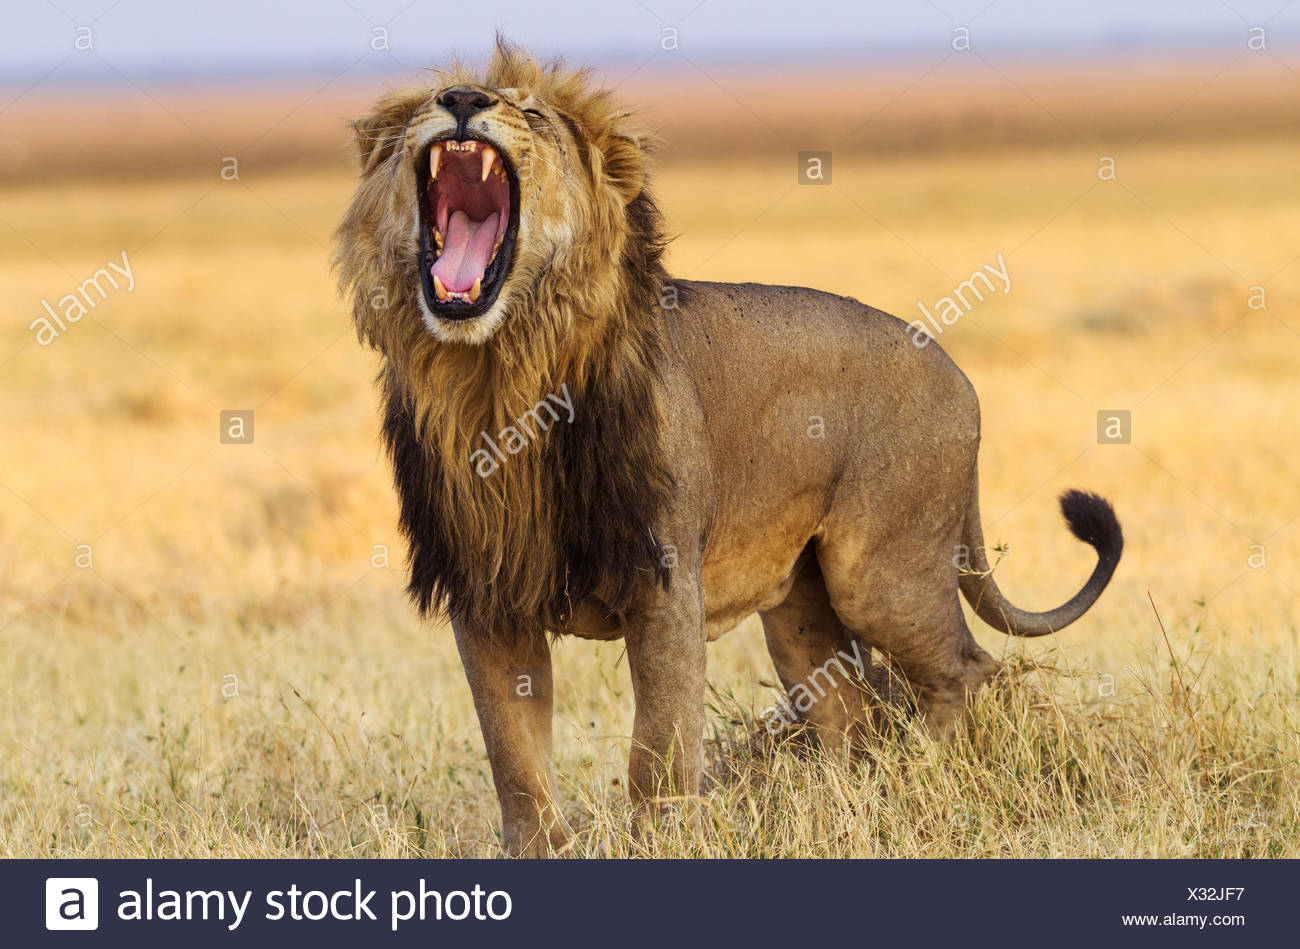 Lion (Panthera leo), male, standing and yawning, Savuti, Chobe National Park, Botswana - Stock Image